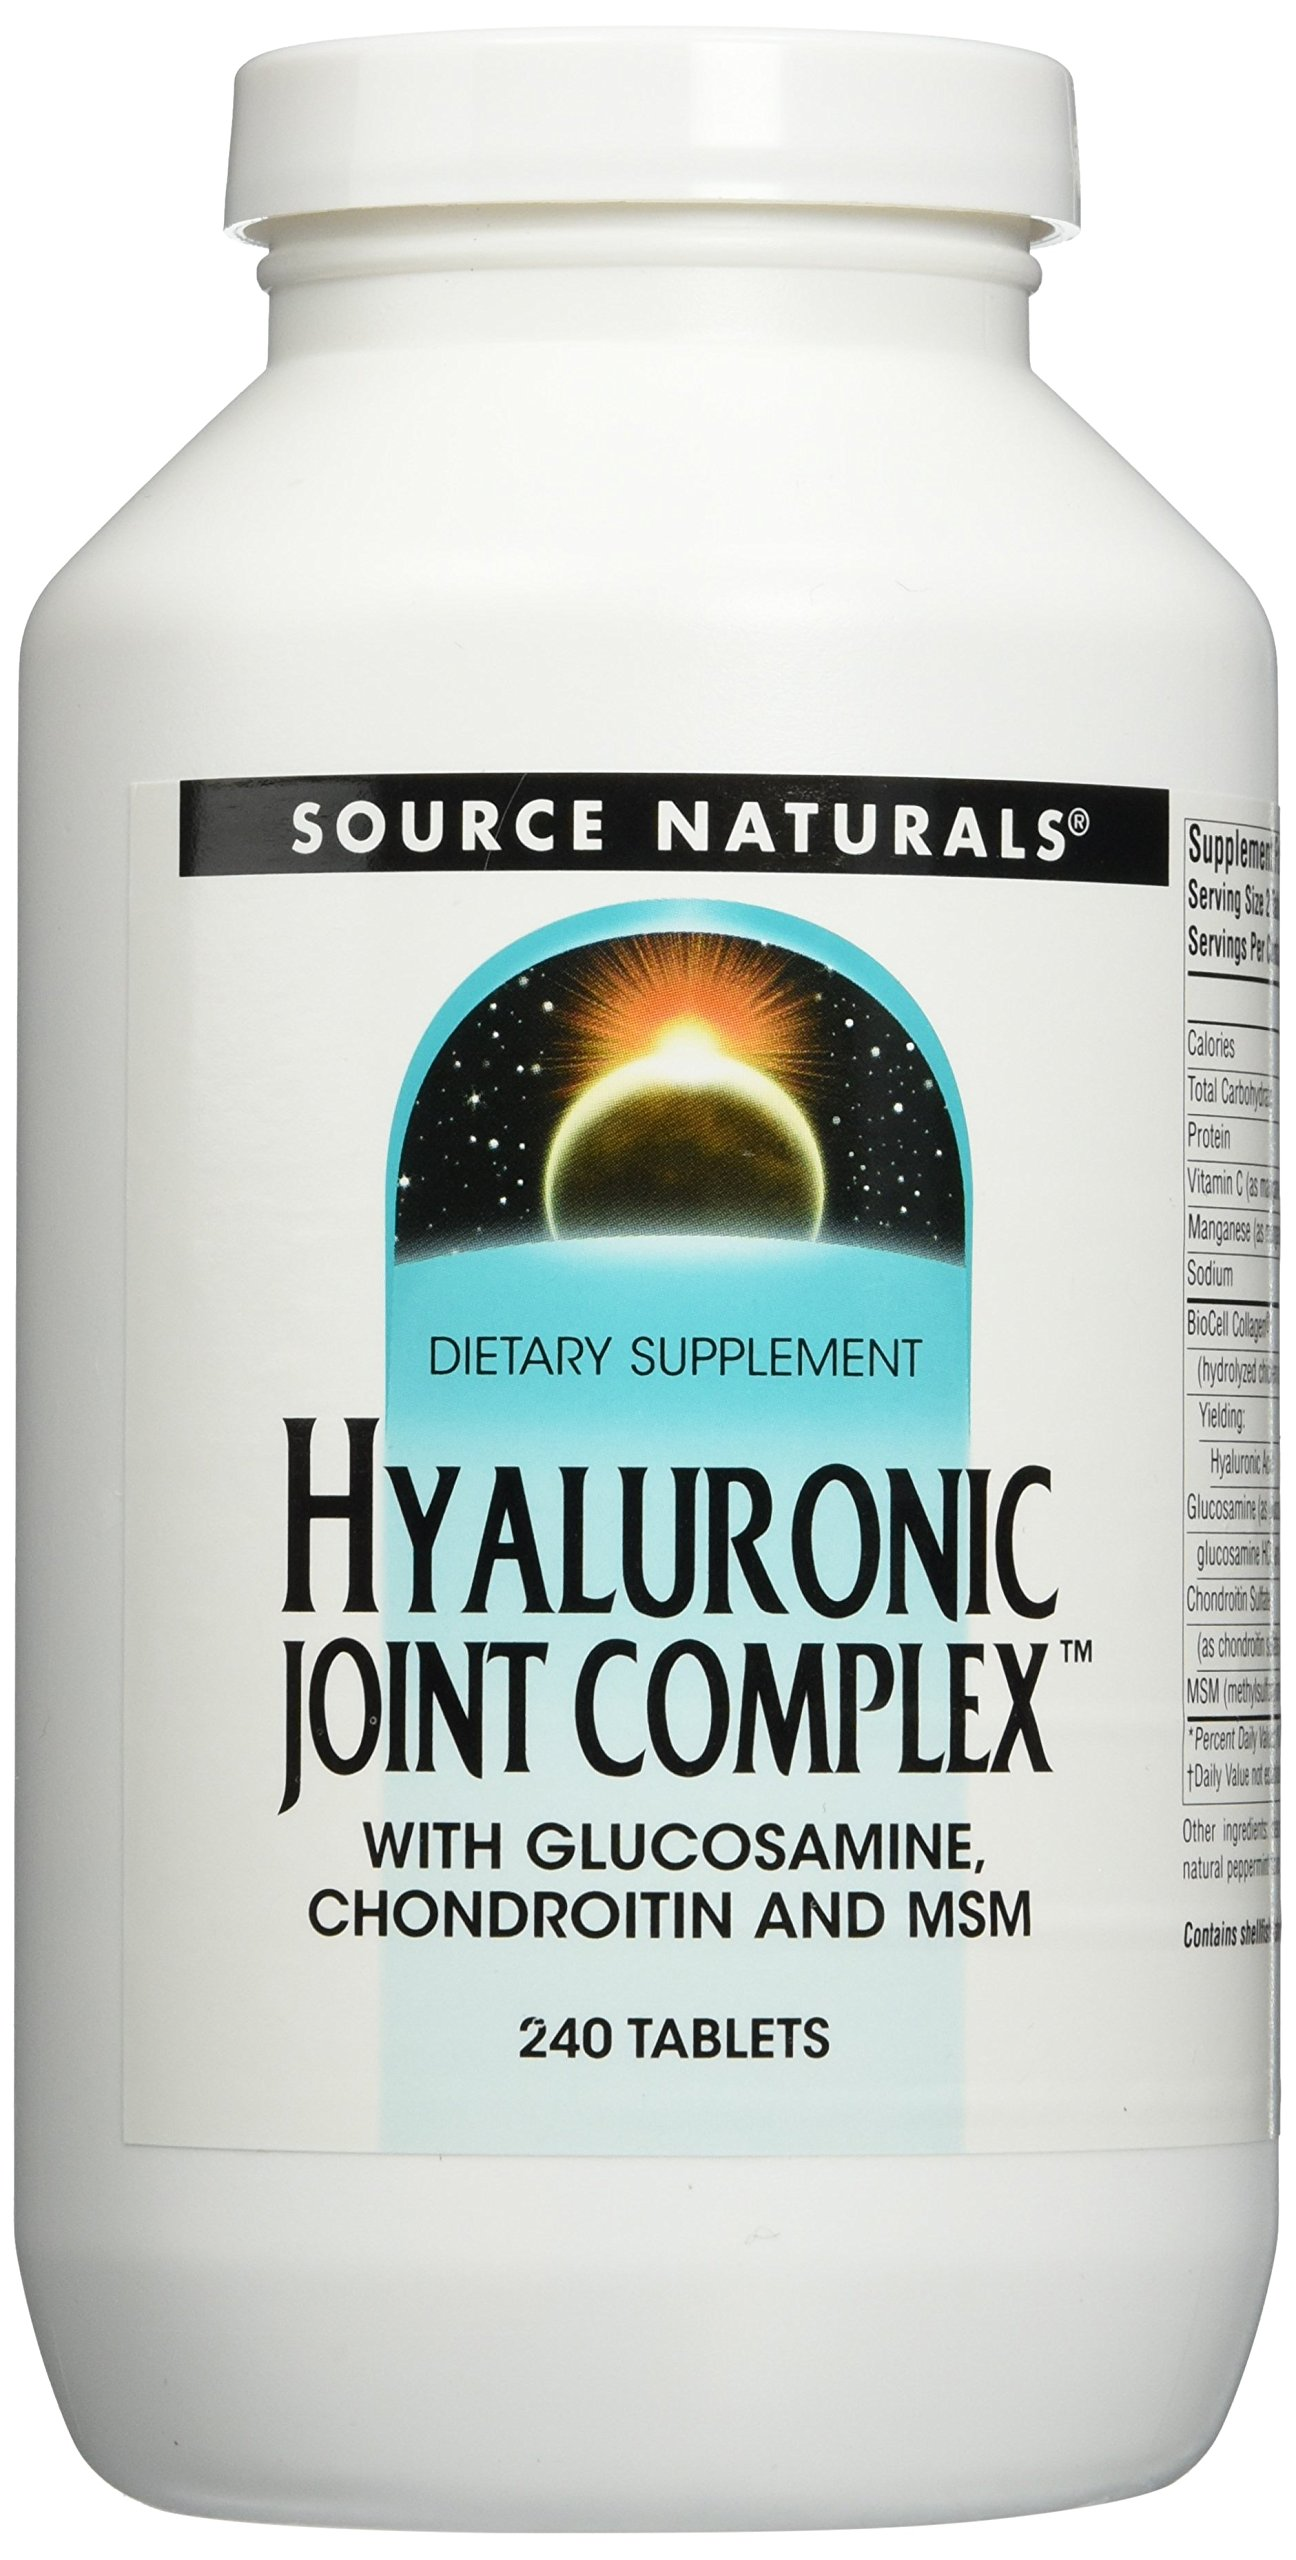 SOURCE NATURALS Hyaluronic Joint Complex Tablet, 240 Count